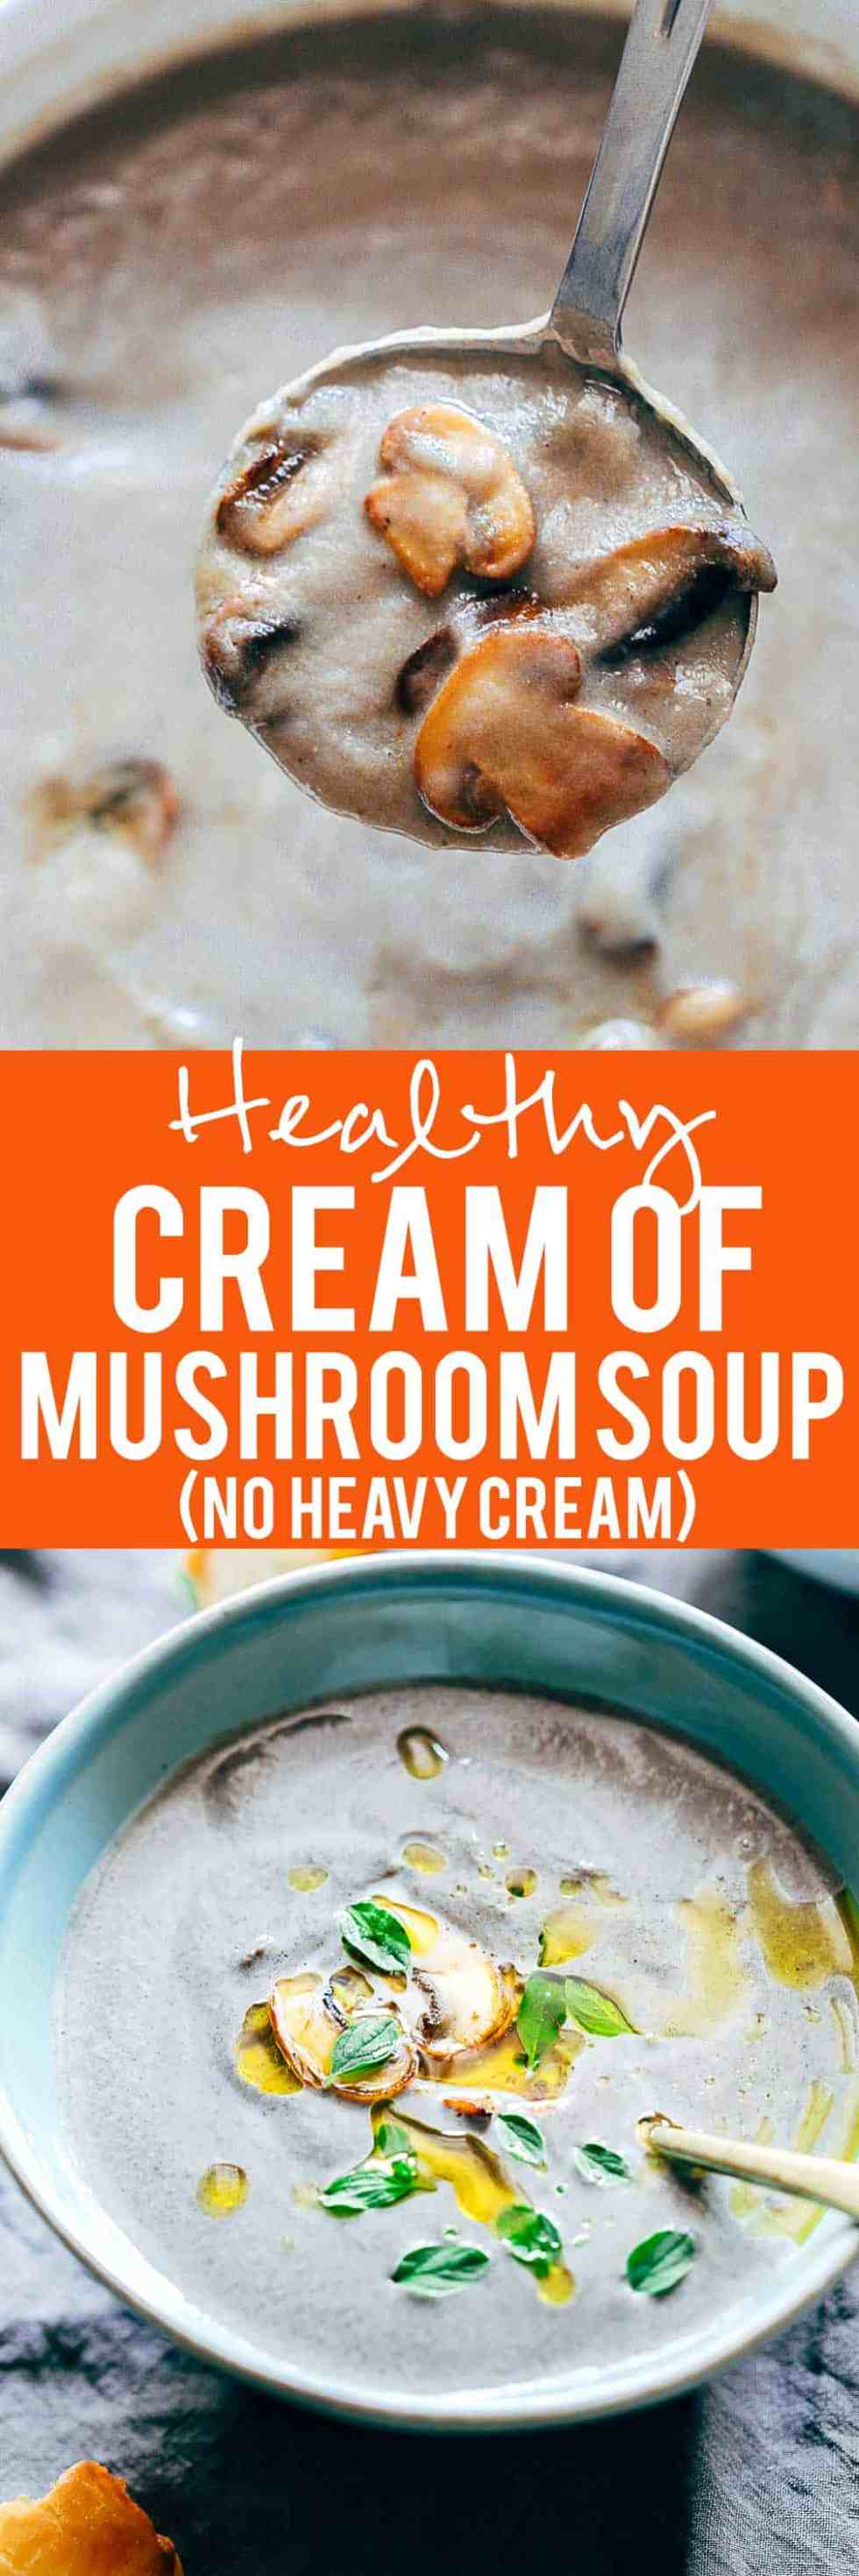 Healthy cream of mushroom soup is made in the pressure cooker without any weird ingredients. Its light, super creamy and gets its creaminess from a secret ingredient!